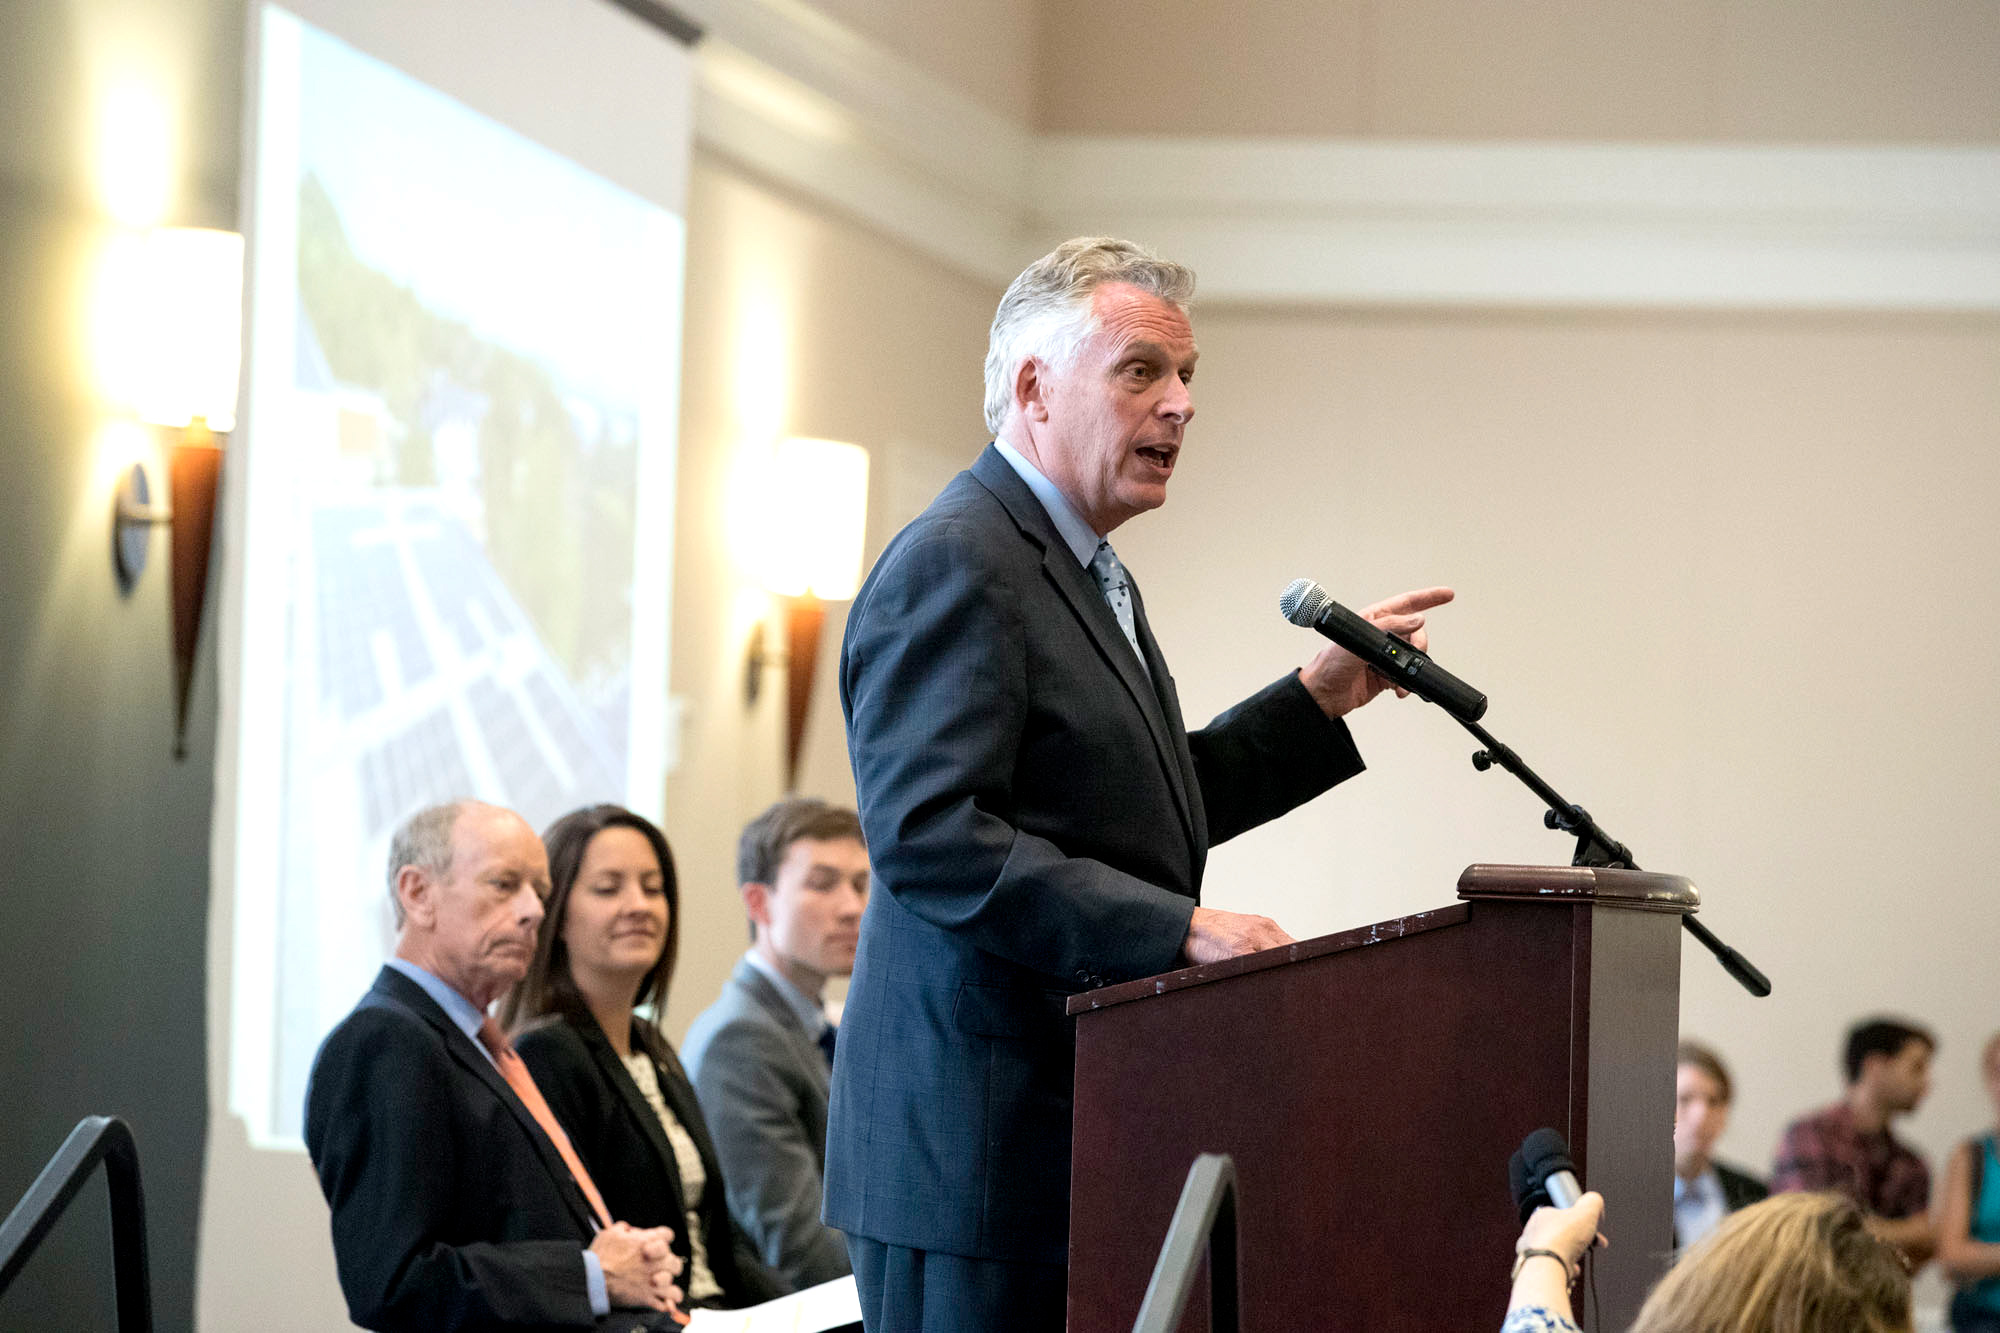 McAuliffe cut a symbolic ribbon for the array, which has been in place since February and is on its way toward producing nearly 200,000 kilowatt hours of electricity this year.